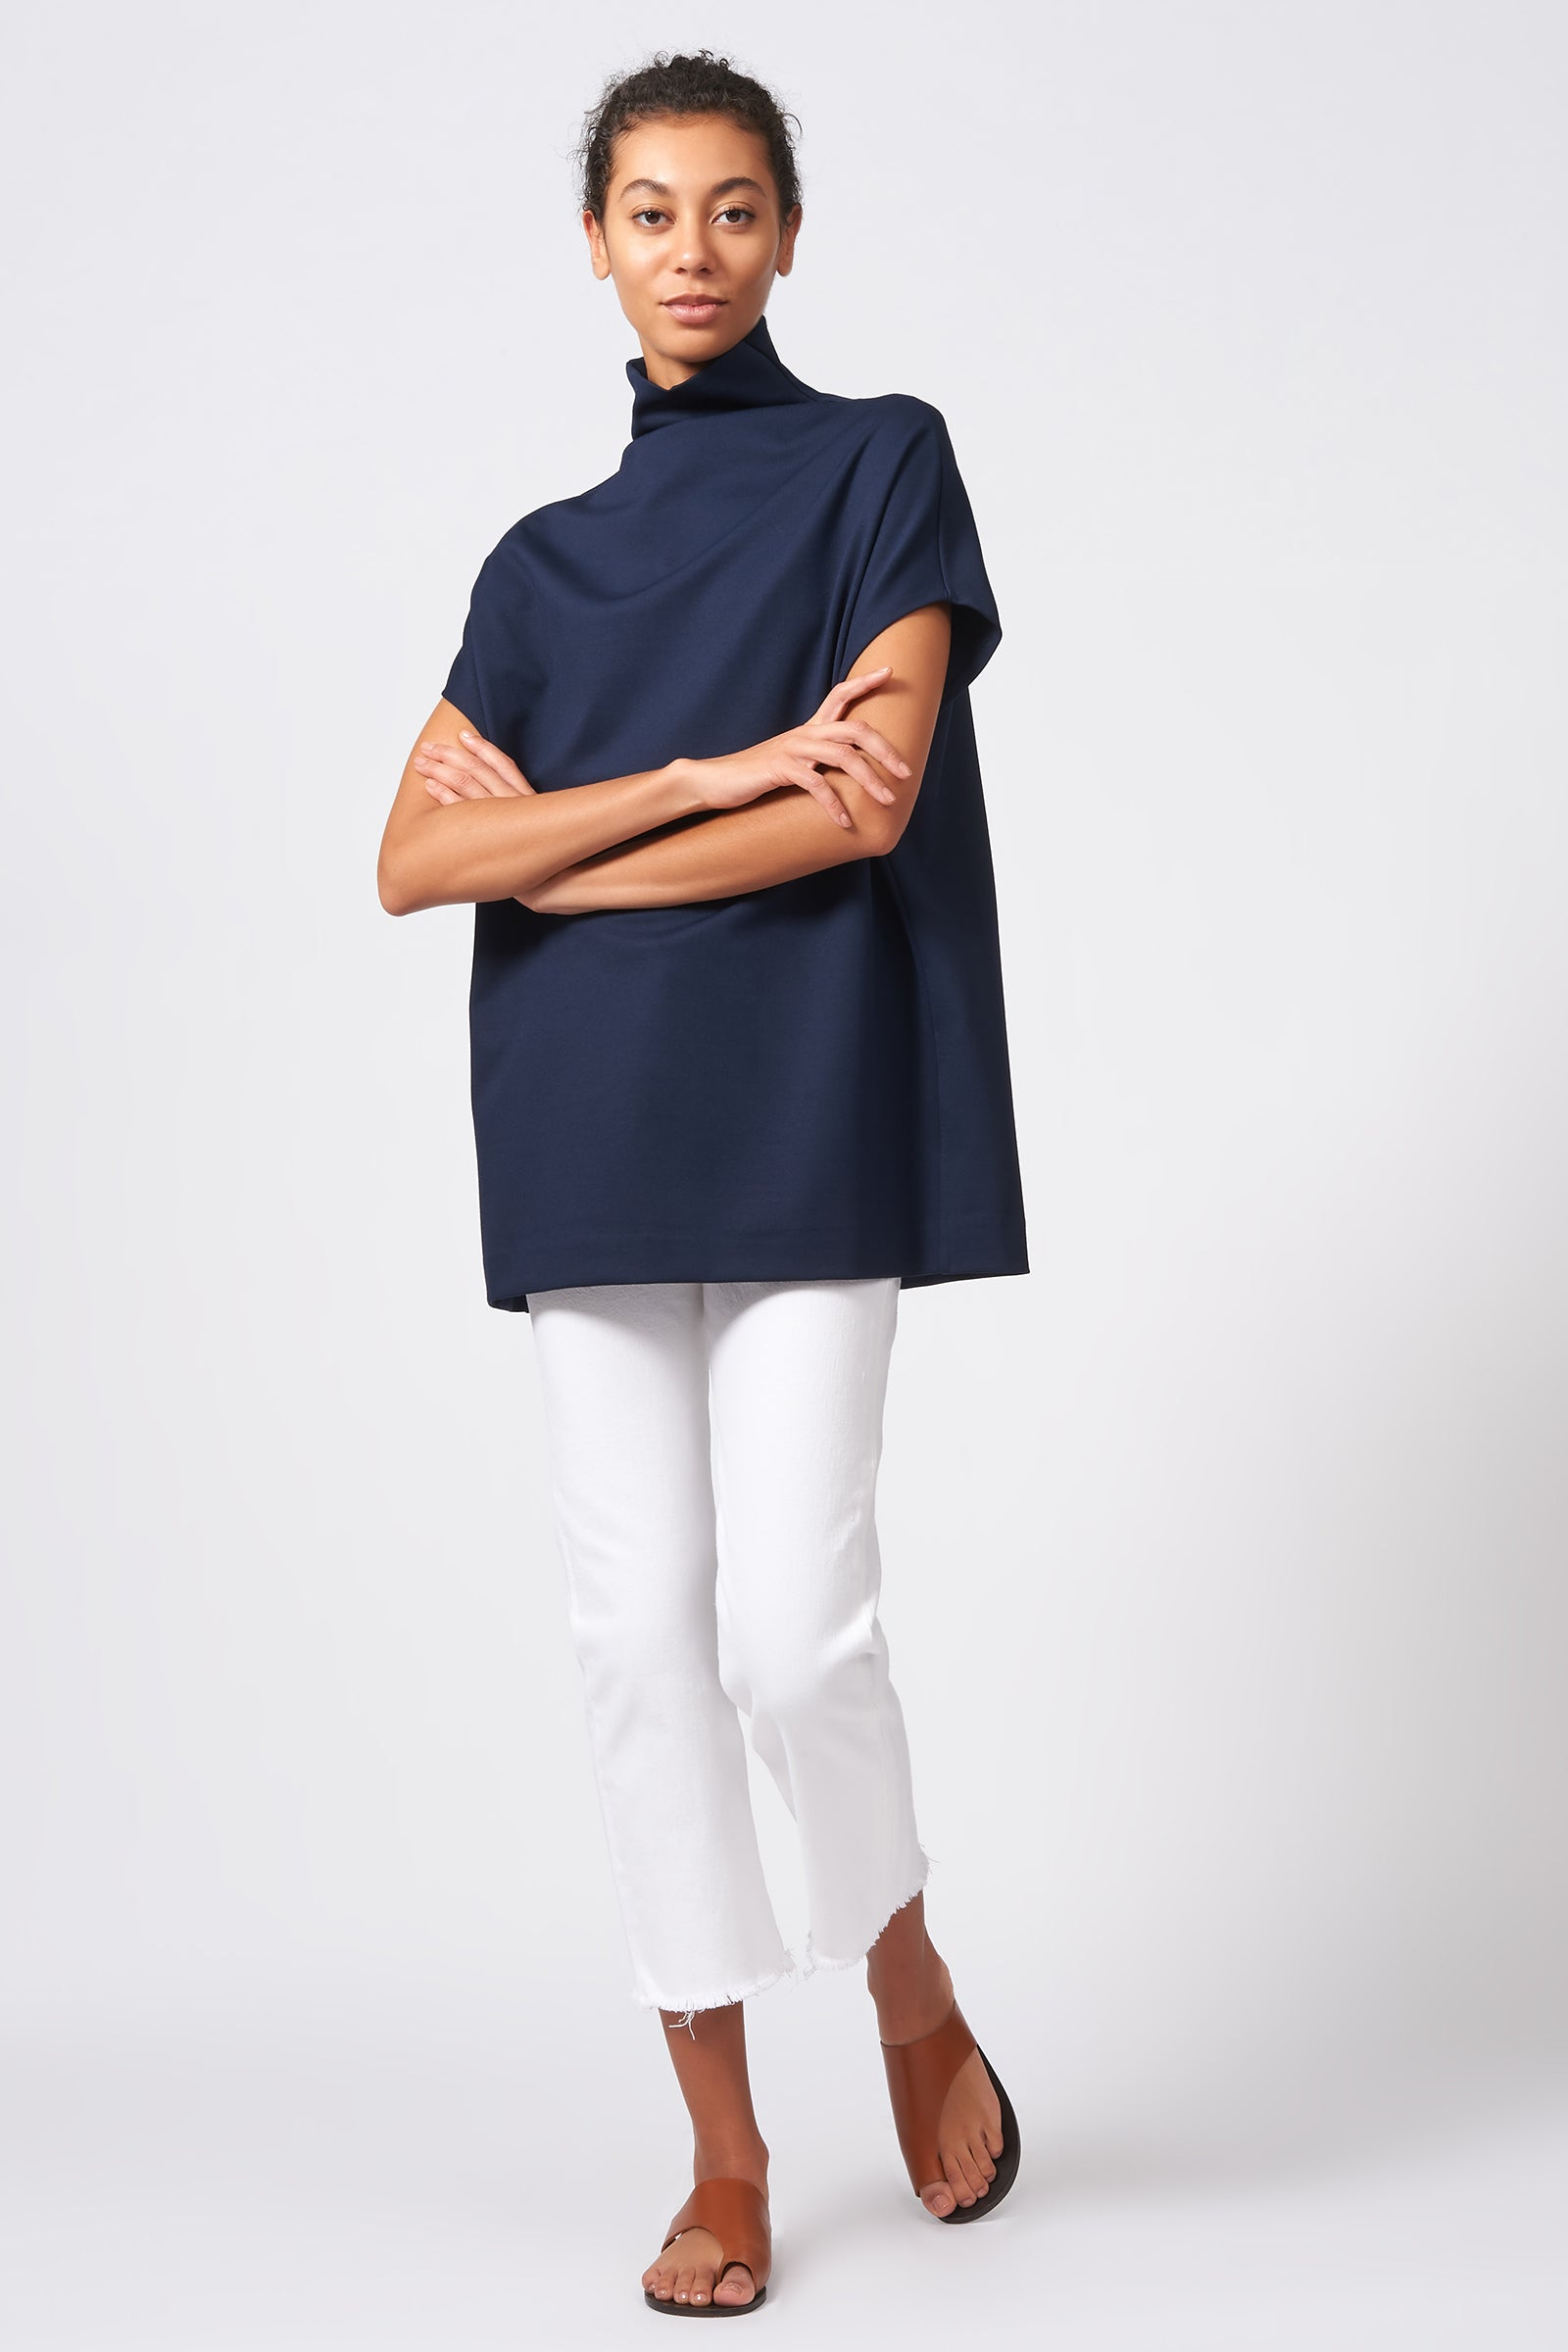 Kal Rieman Ponte Funnelneck in Navy on Model Full Front View